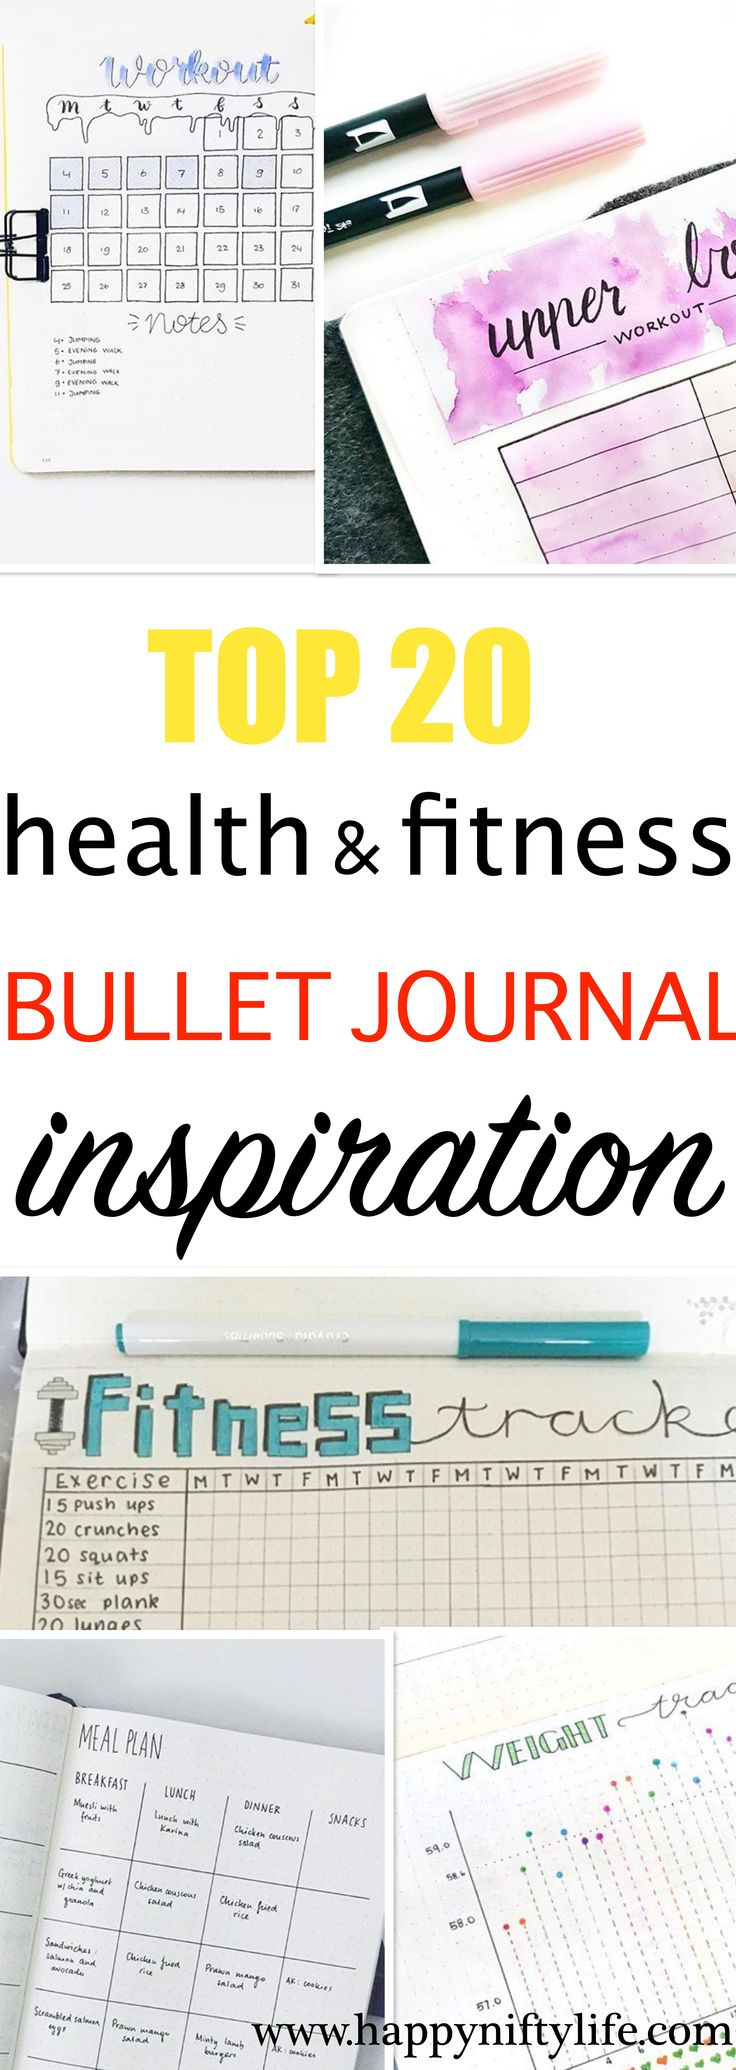 Very inspiring bullet journal page ideas for tracking health, fitness and weight loss. Bullet journal workout tracker and fitness tracker layout ideas #bulletjournal #bulletjournalpageideas #fitnessbujo #bujoideas #bujojunkies